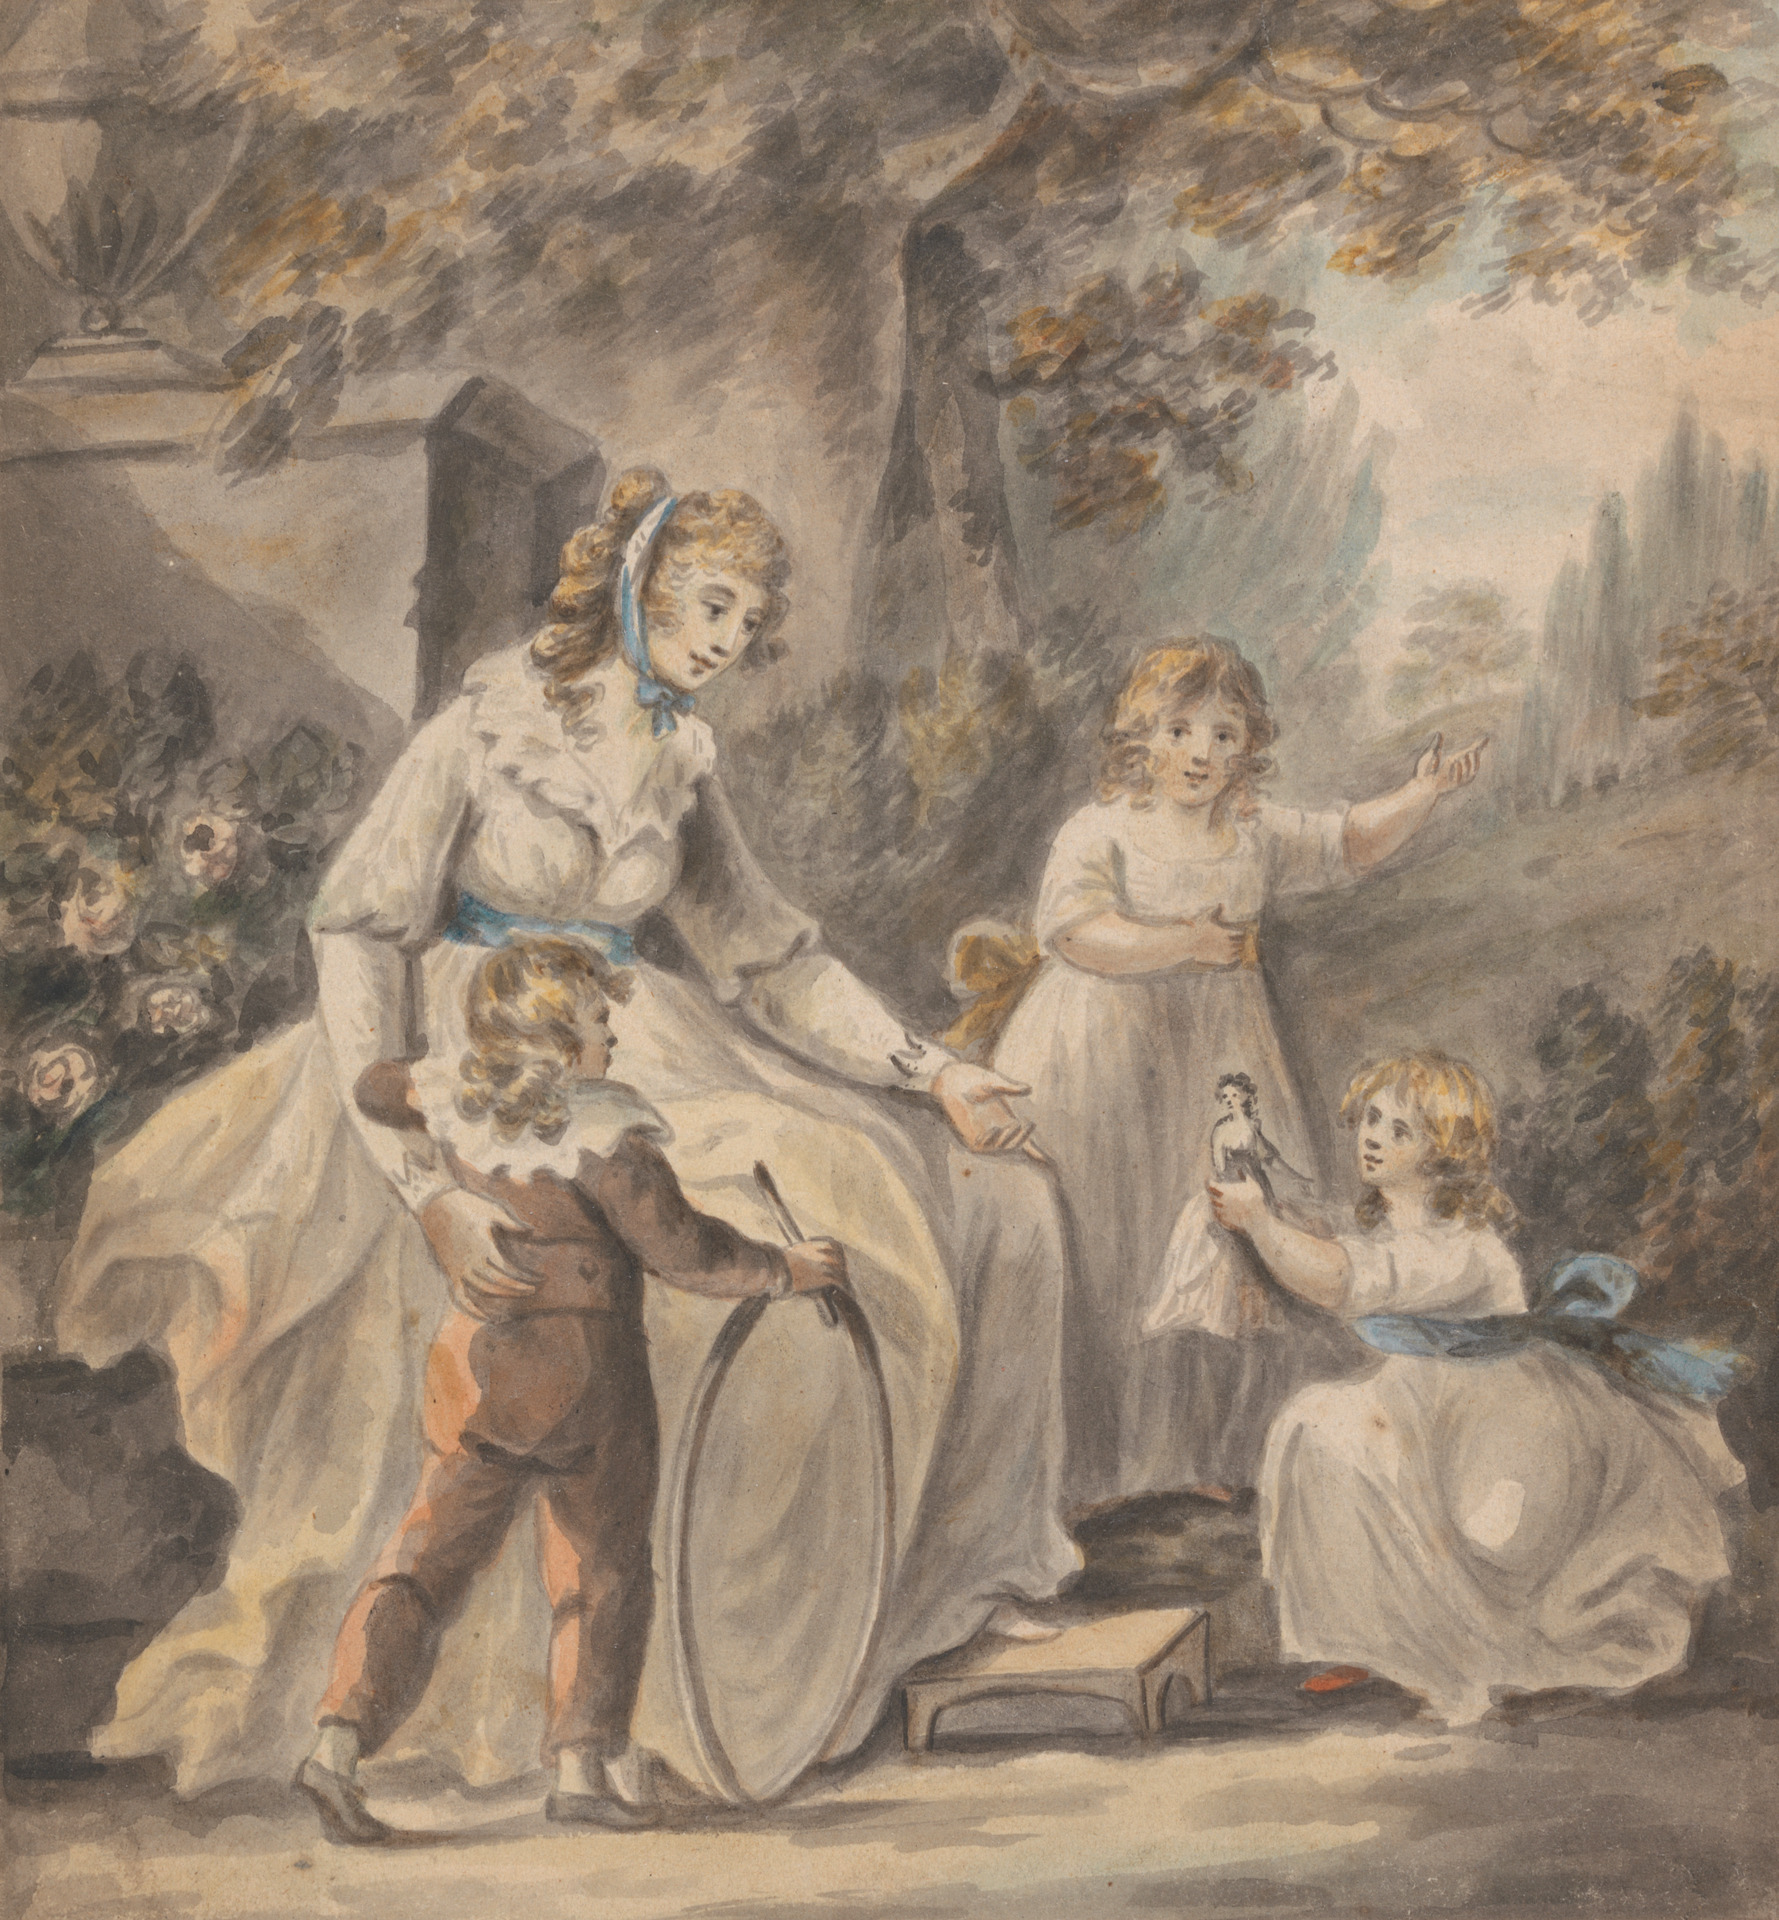 A Nurse with Three Children by Paul Sandby, c 1800.